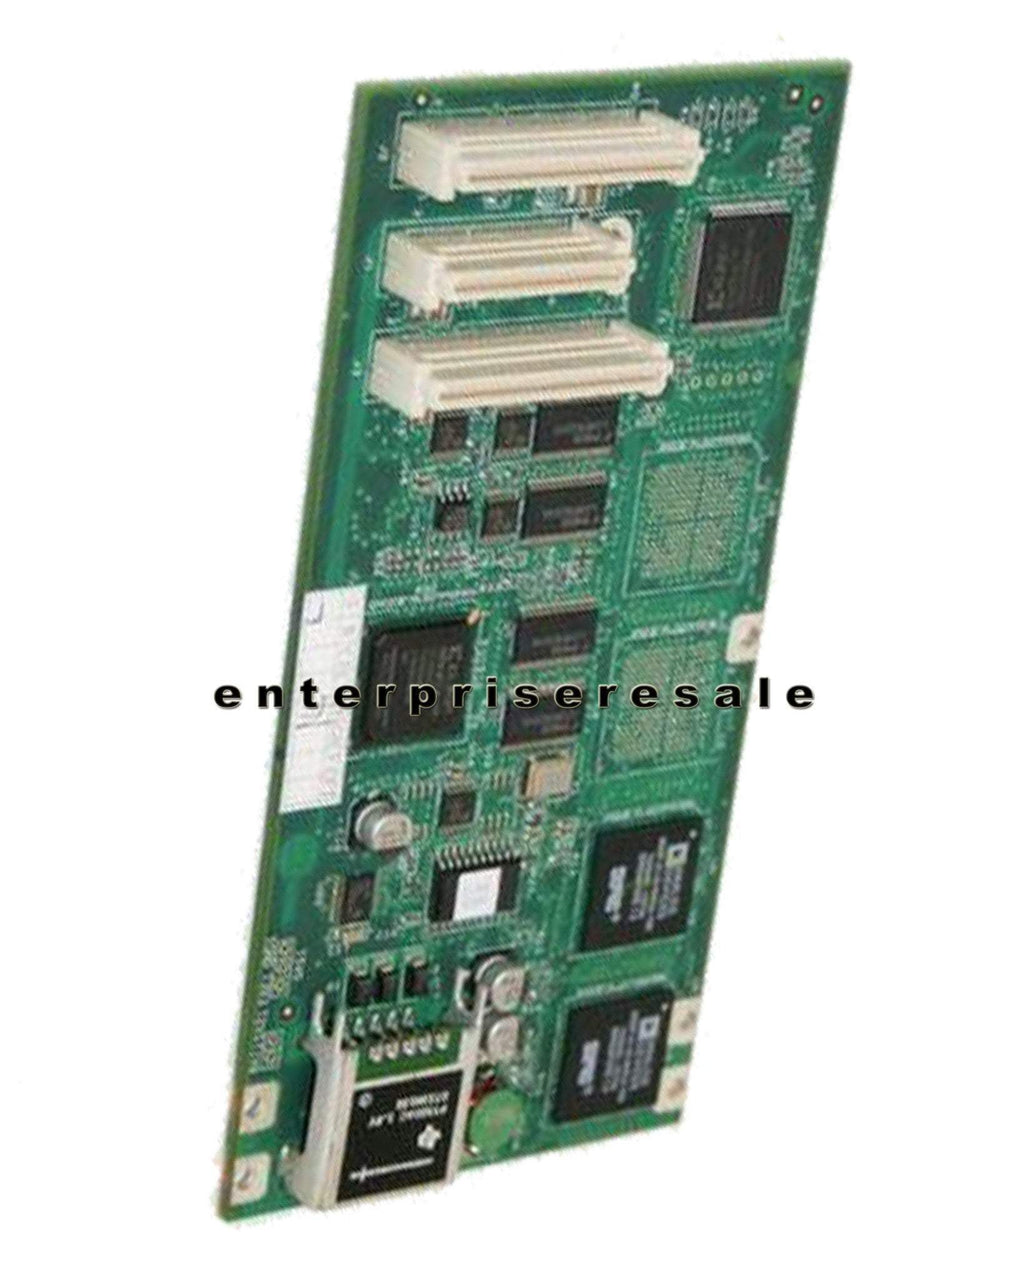 Mitel Phone Switching Systems, PBXs Mitel Dual DSP Module (50003728) Card